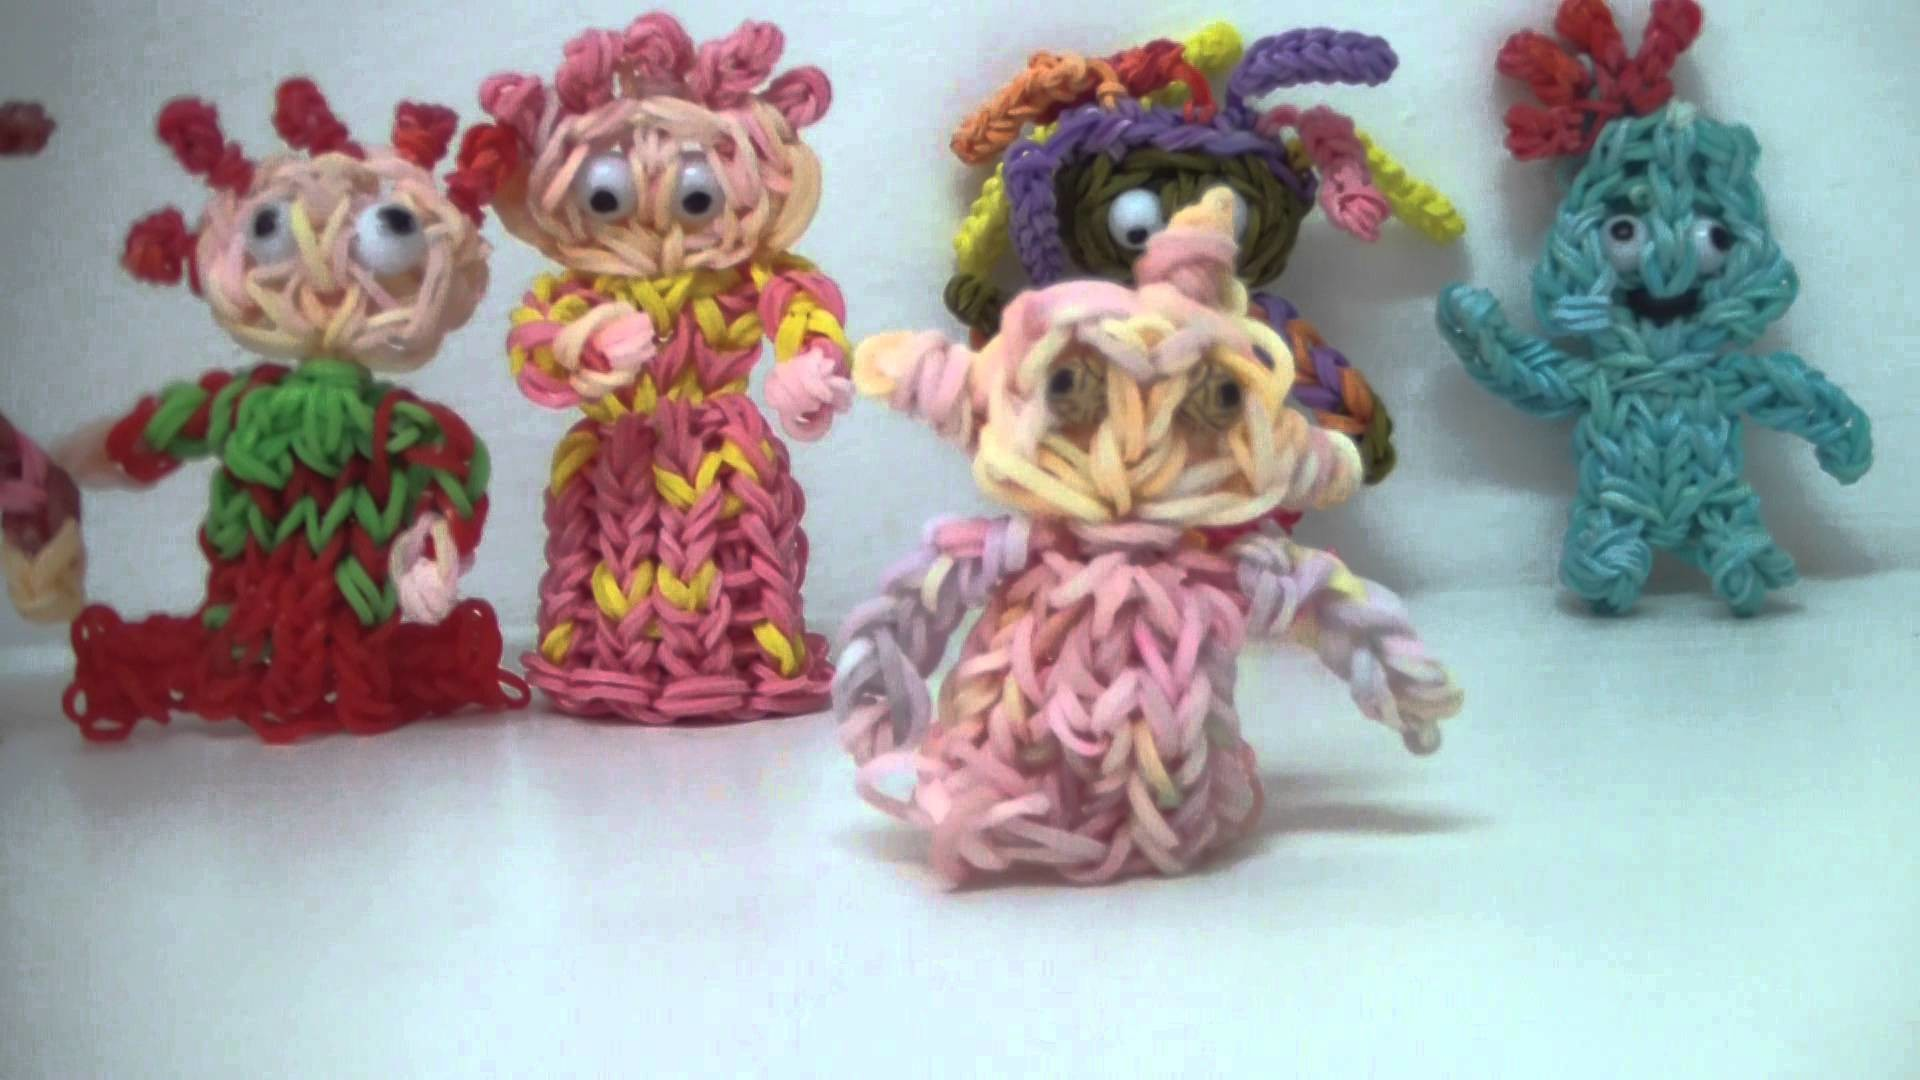 RAINBOW LOOM - IN THE NIGHT GARDEN FIGURES (3)